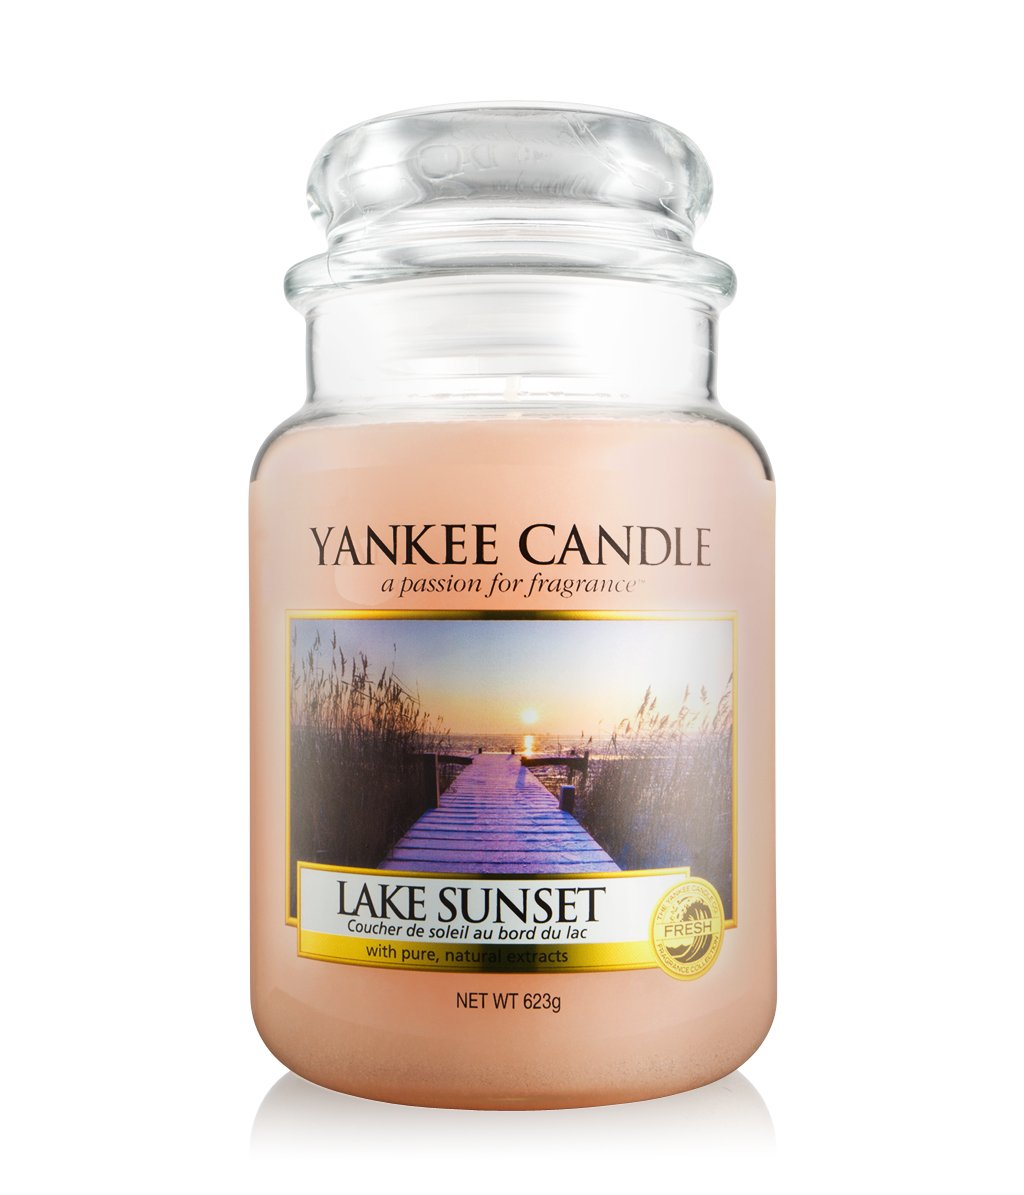 yankee candle lake sunset duftkerze online bestellen flaconi. Black Bedroom Furniture Sets. Home Design Ideas